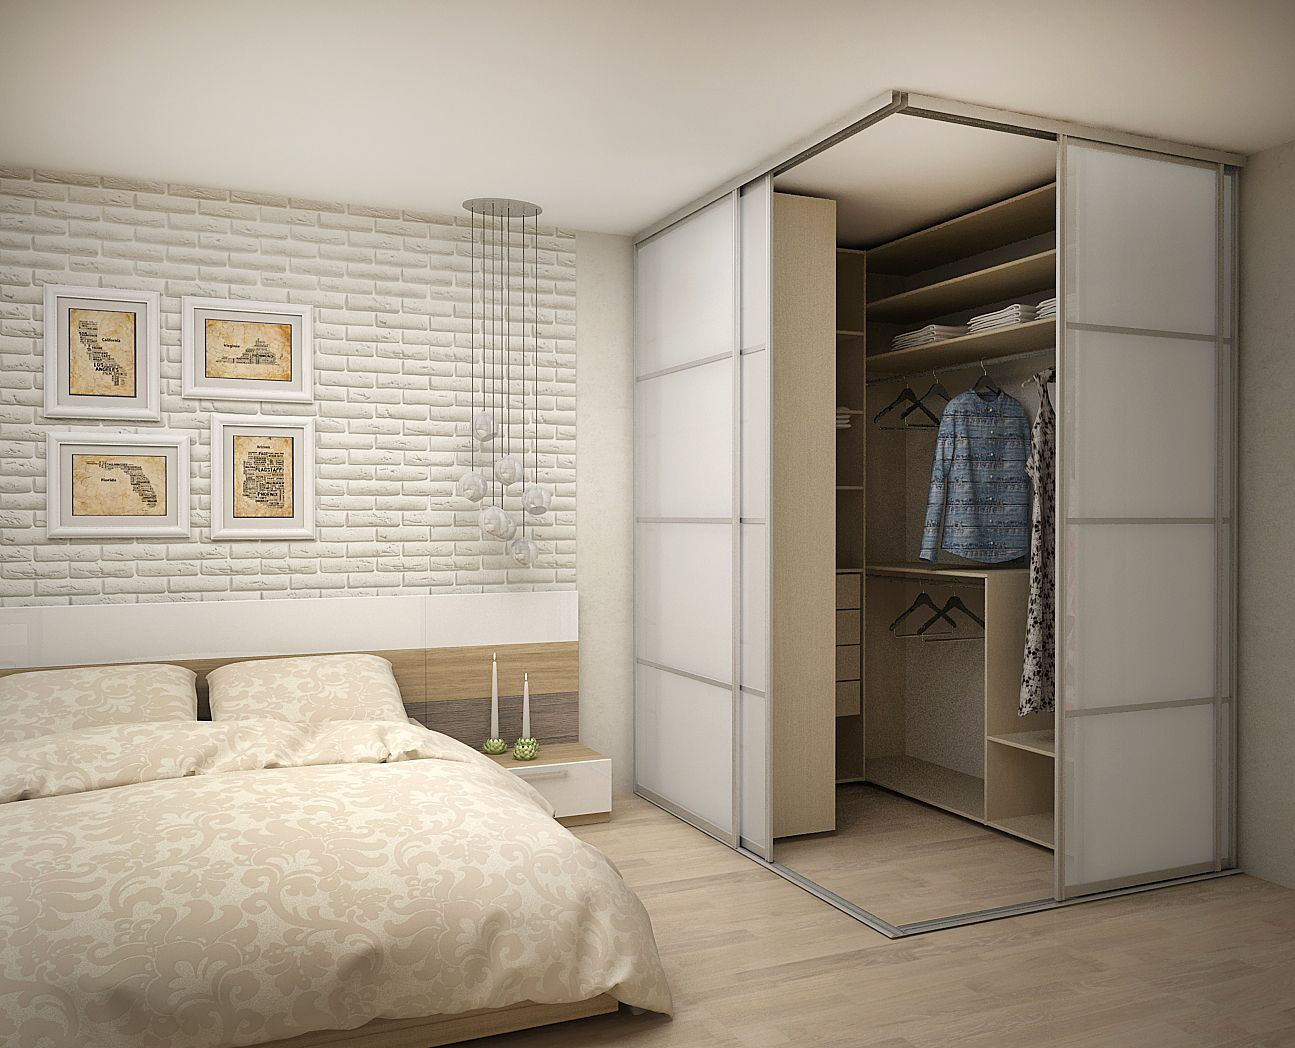 4 room hdb master bedroom design   best images about Bedroom on Pinterest  Singapore Fineline and